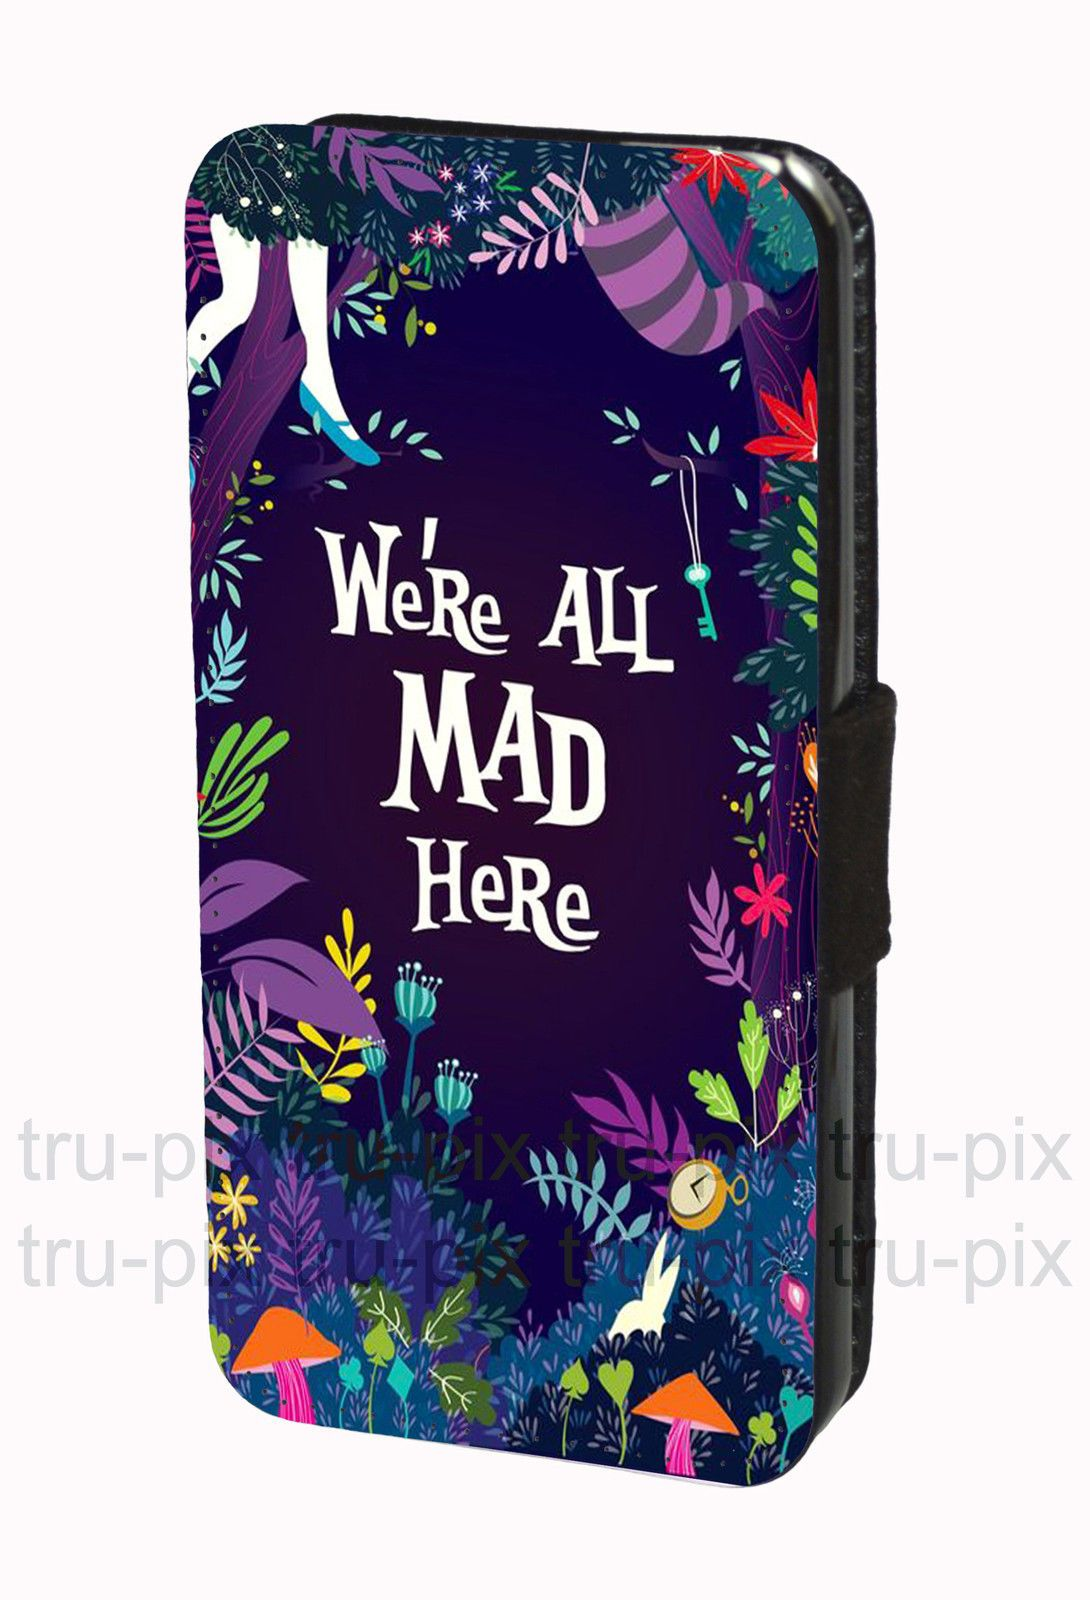 timeless design fcc18 e897a Details about Walt Disney Alice in Wonderland Phone Case Cover For ...